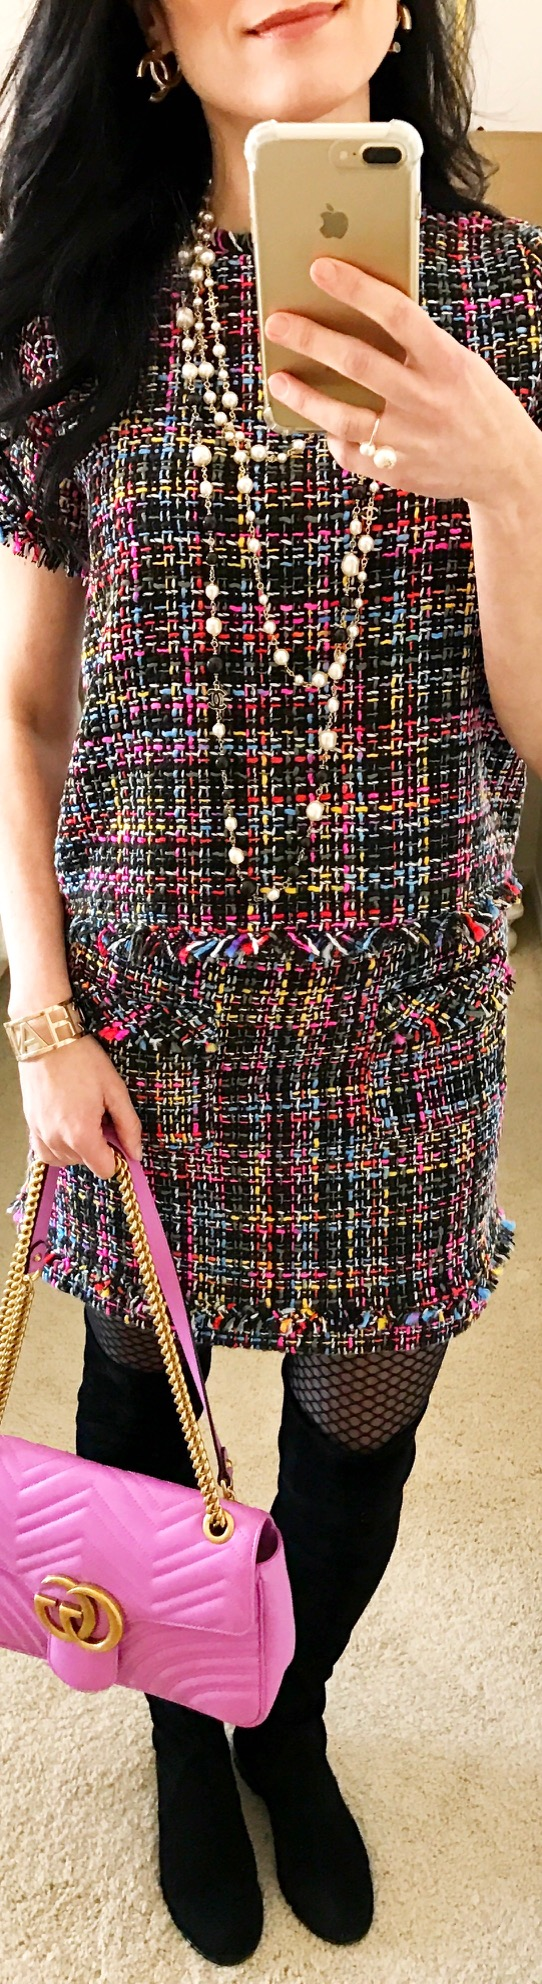 February 14th Tweed Top and Skirt by Zara with Gucci Marmont Pink Bag and Chanel Pearls